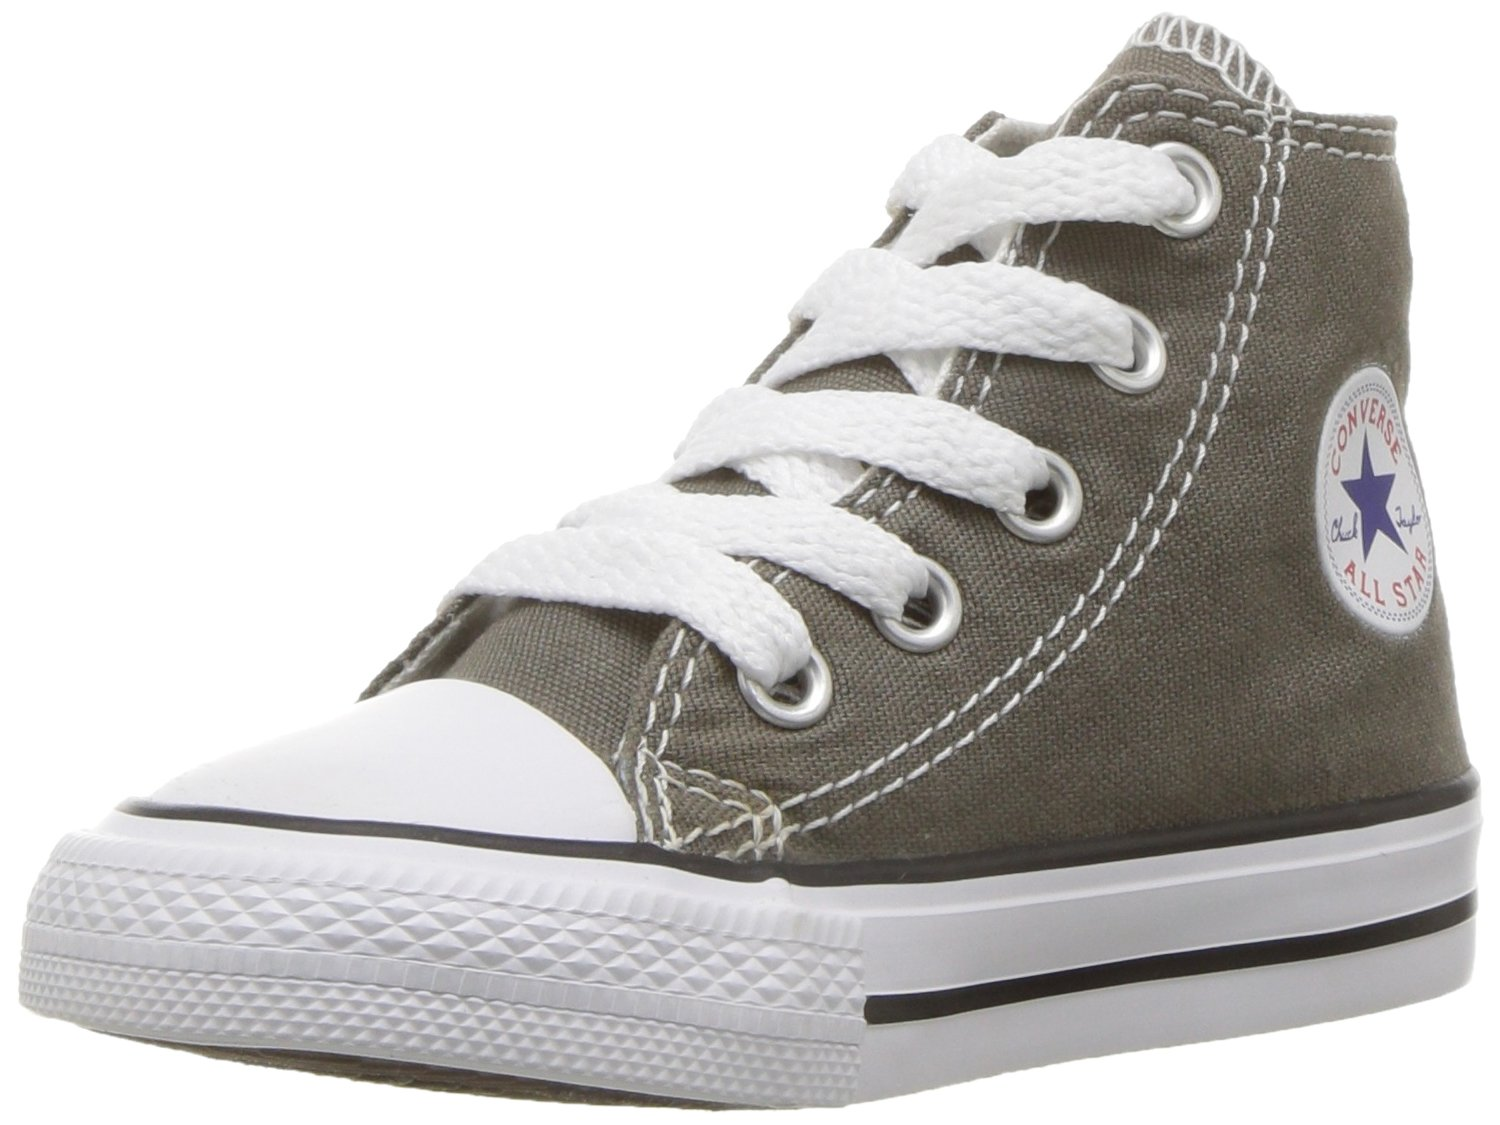 58c647c7add256 Galleon - Converse Kid s Chuck Taylor All Star High Top Shoe ...